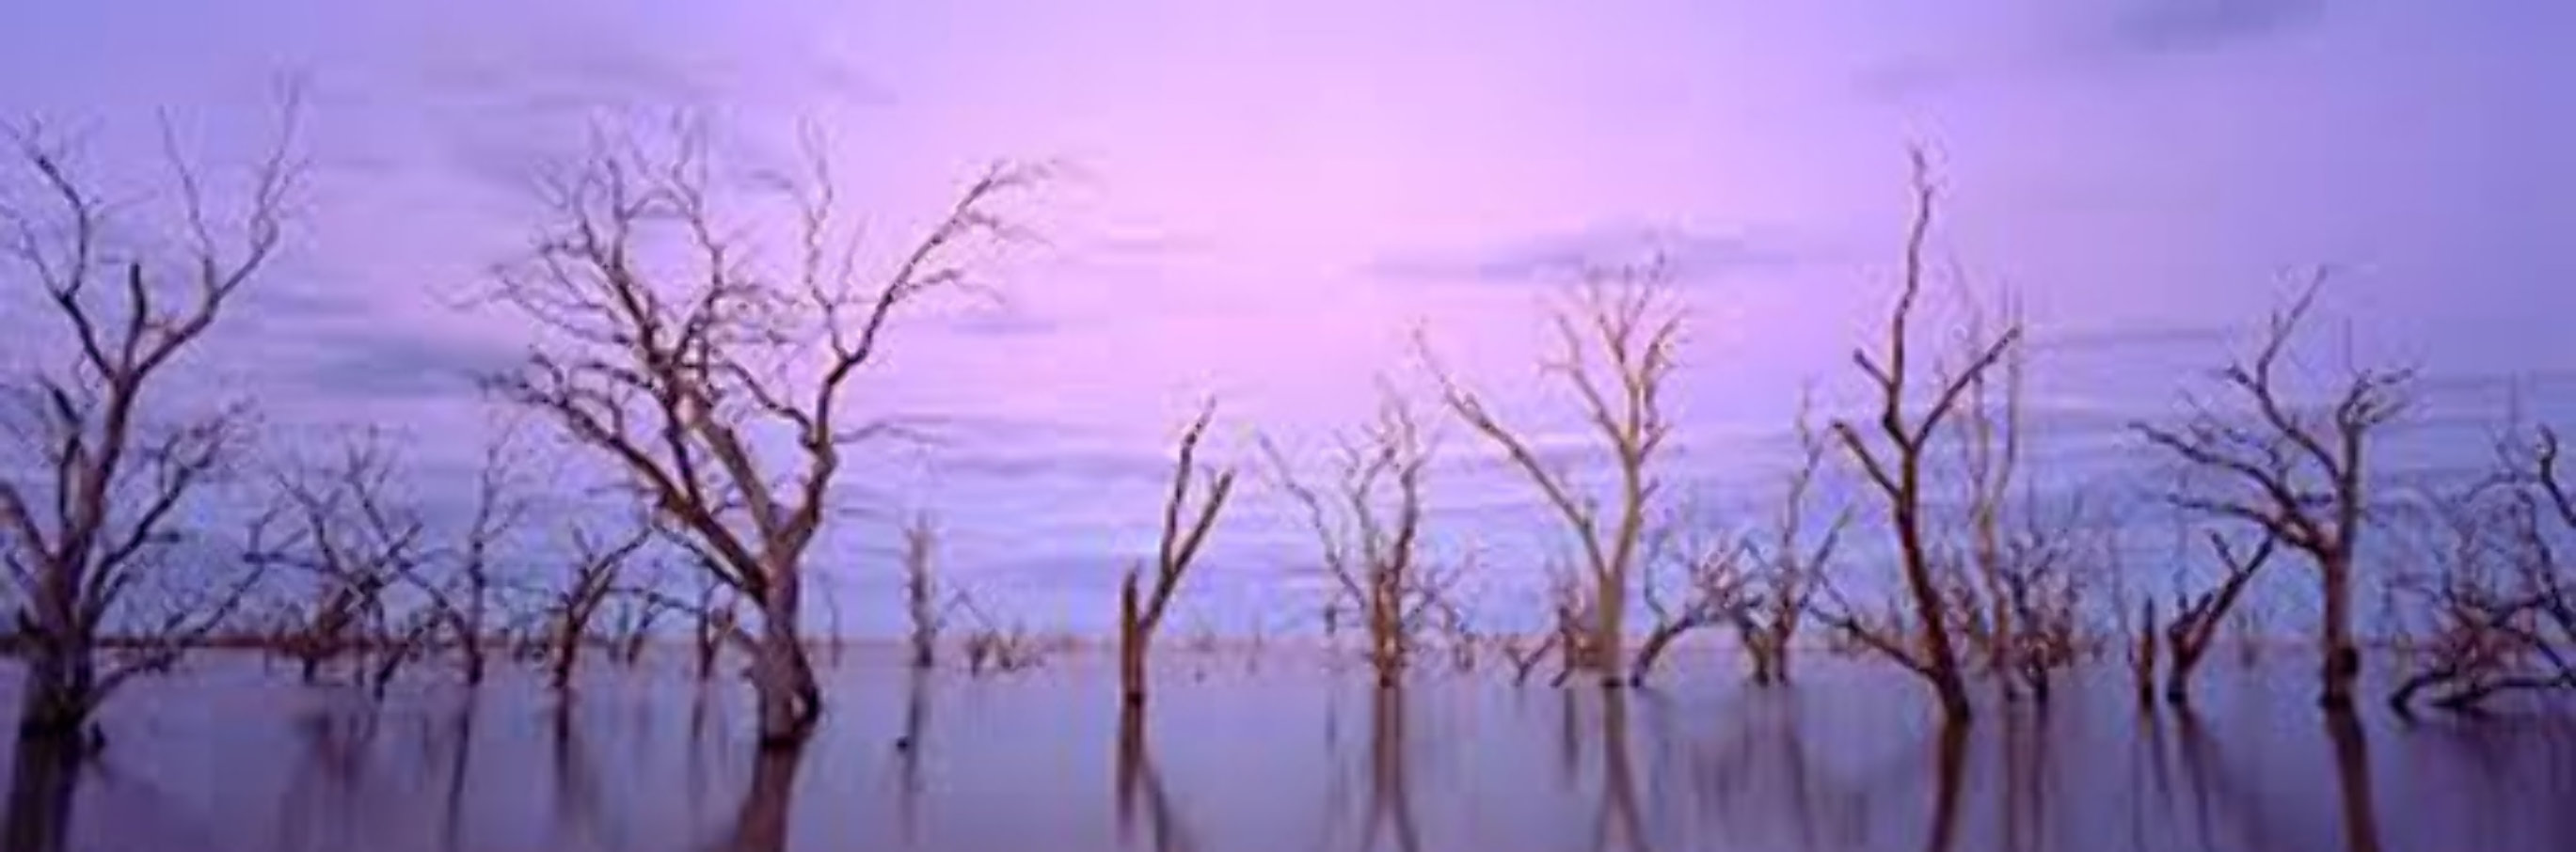 Lake Victoria NSW, Australia 1992 Panorama by Kenneth Duncan